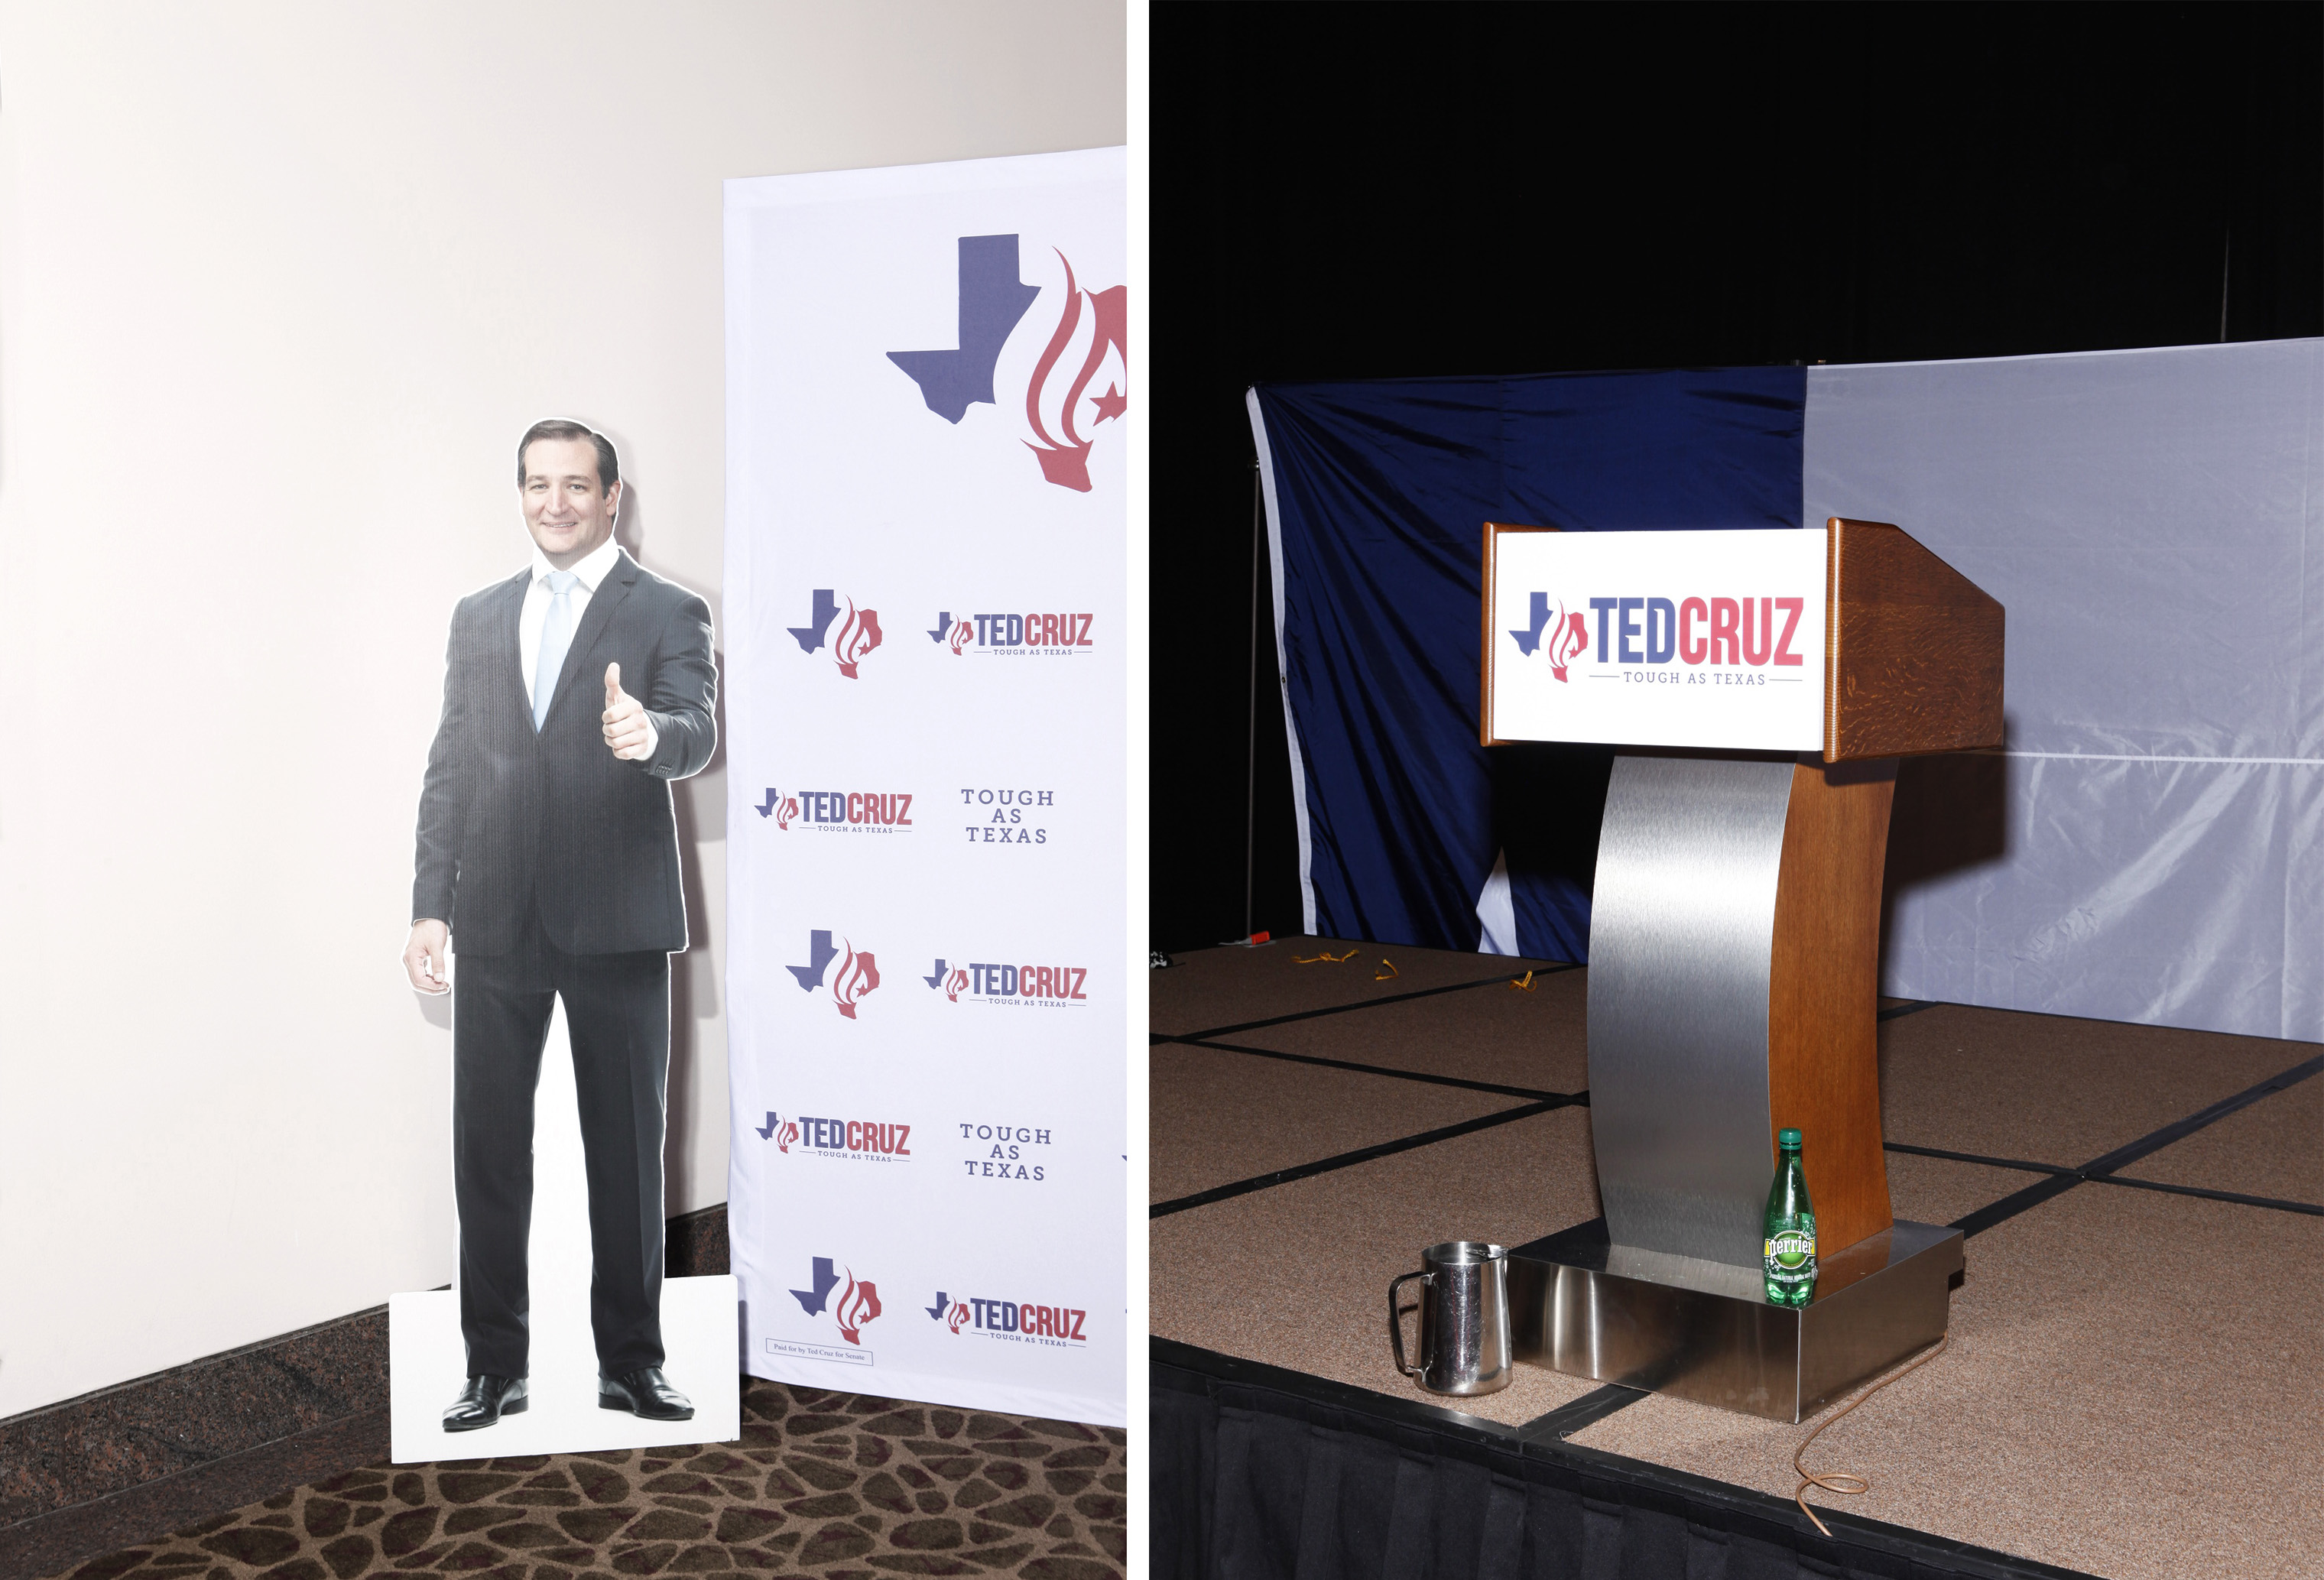 Scenes from the setup for the Election Night party for Sen. Ted Cruz in Houston.